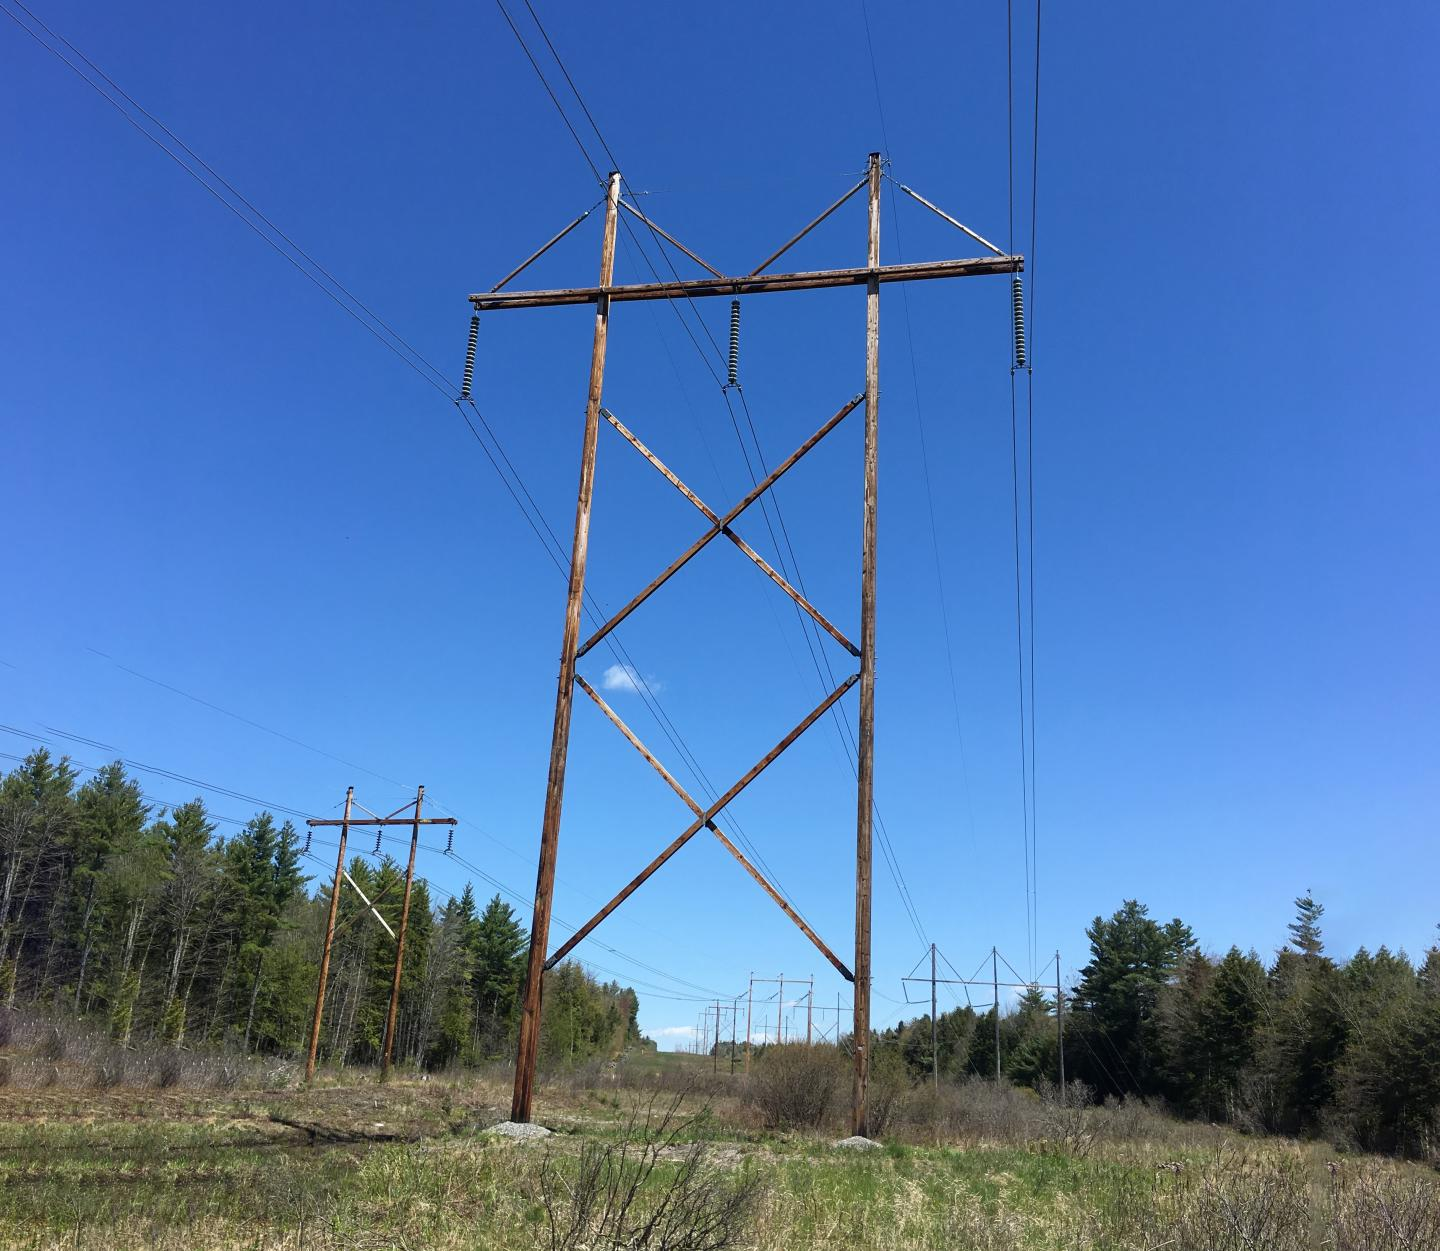 Section 388 and 3023 Transmission Line Rebuild Project